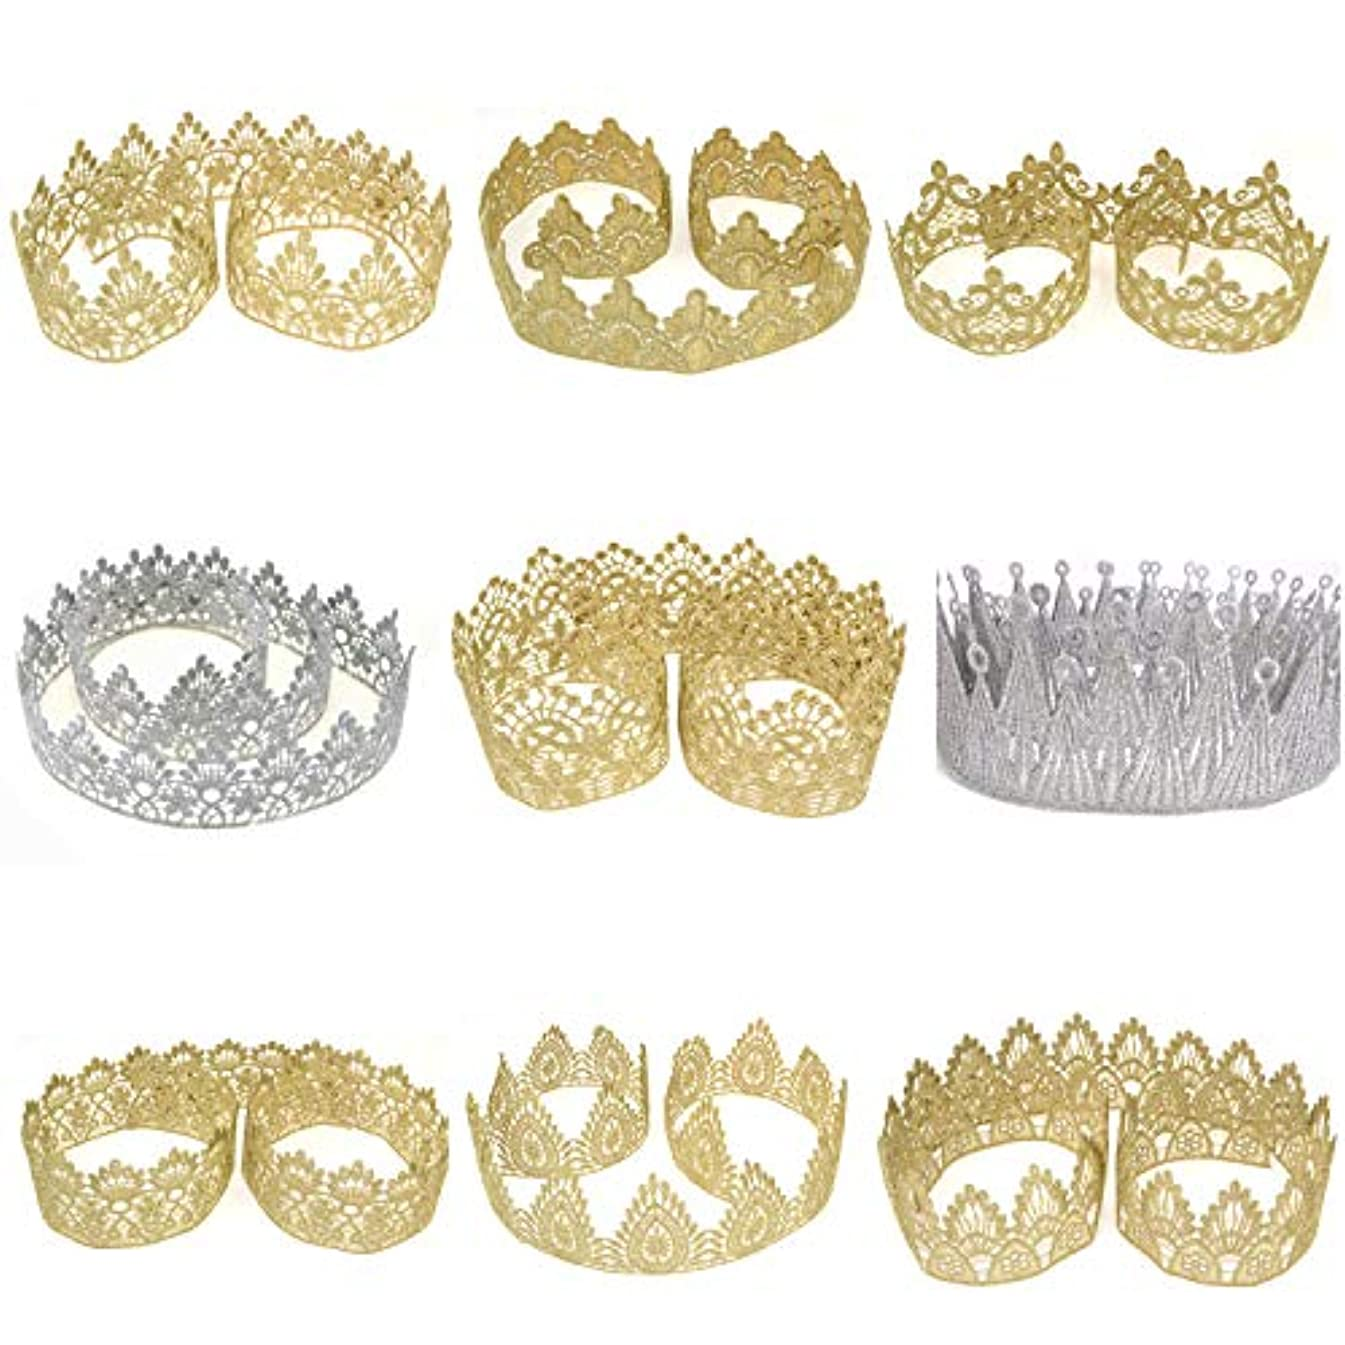 Star Quality Golden Lace for Baby and Grown up DIY Craft Crown | Craft Lace for Princess, Prince and Doll's Crown (1 Yard, Castle Tales Silvery)